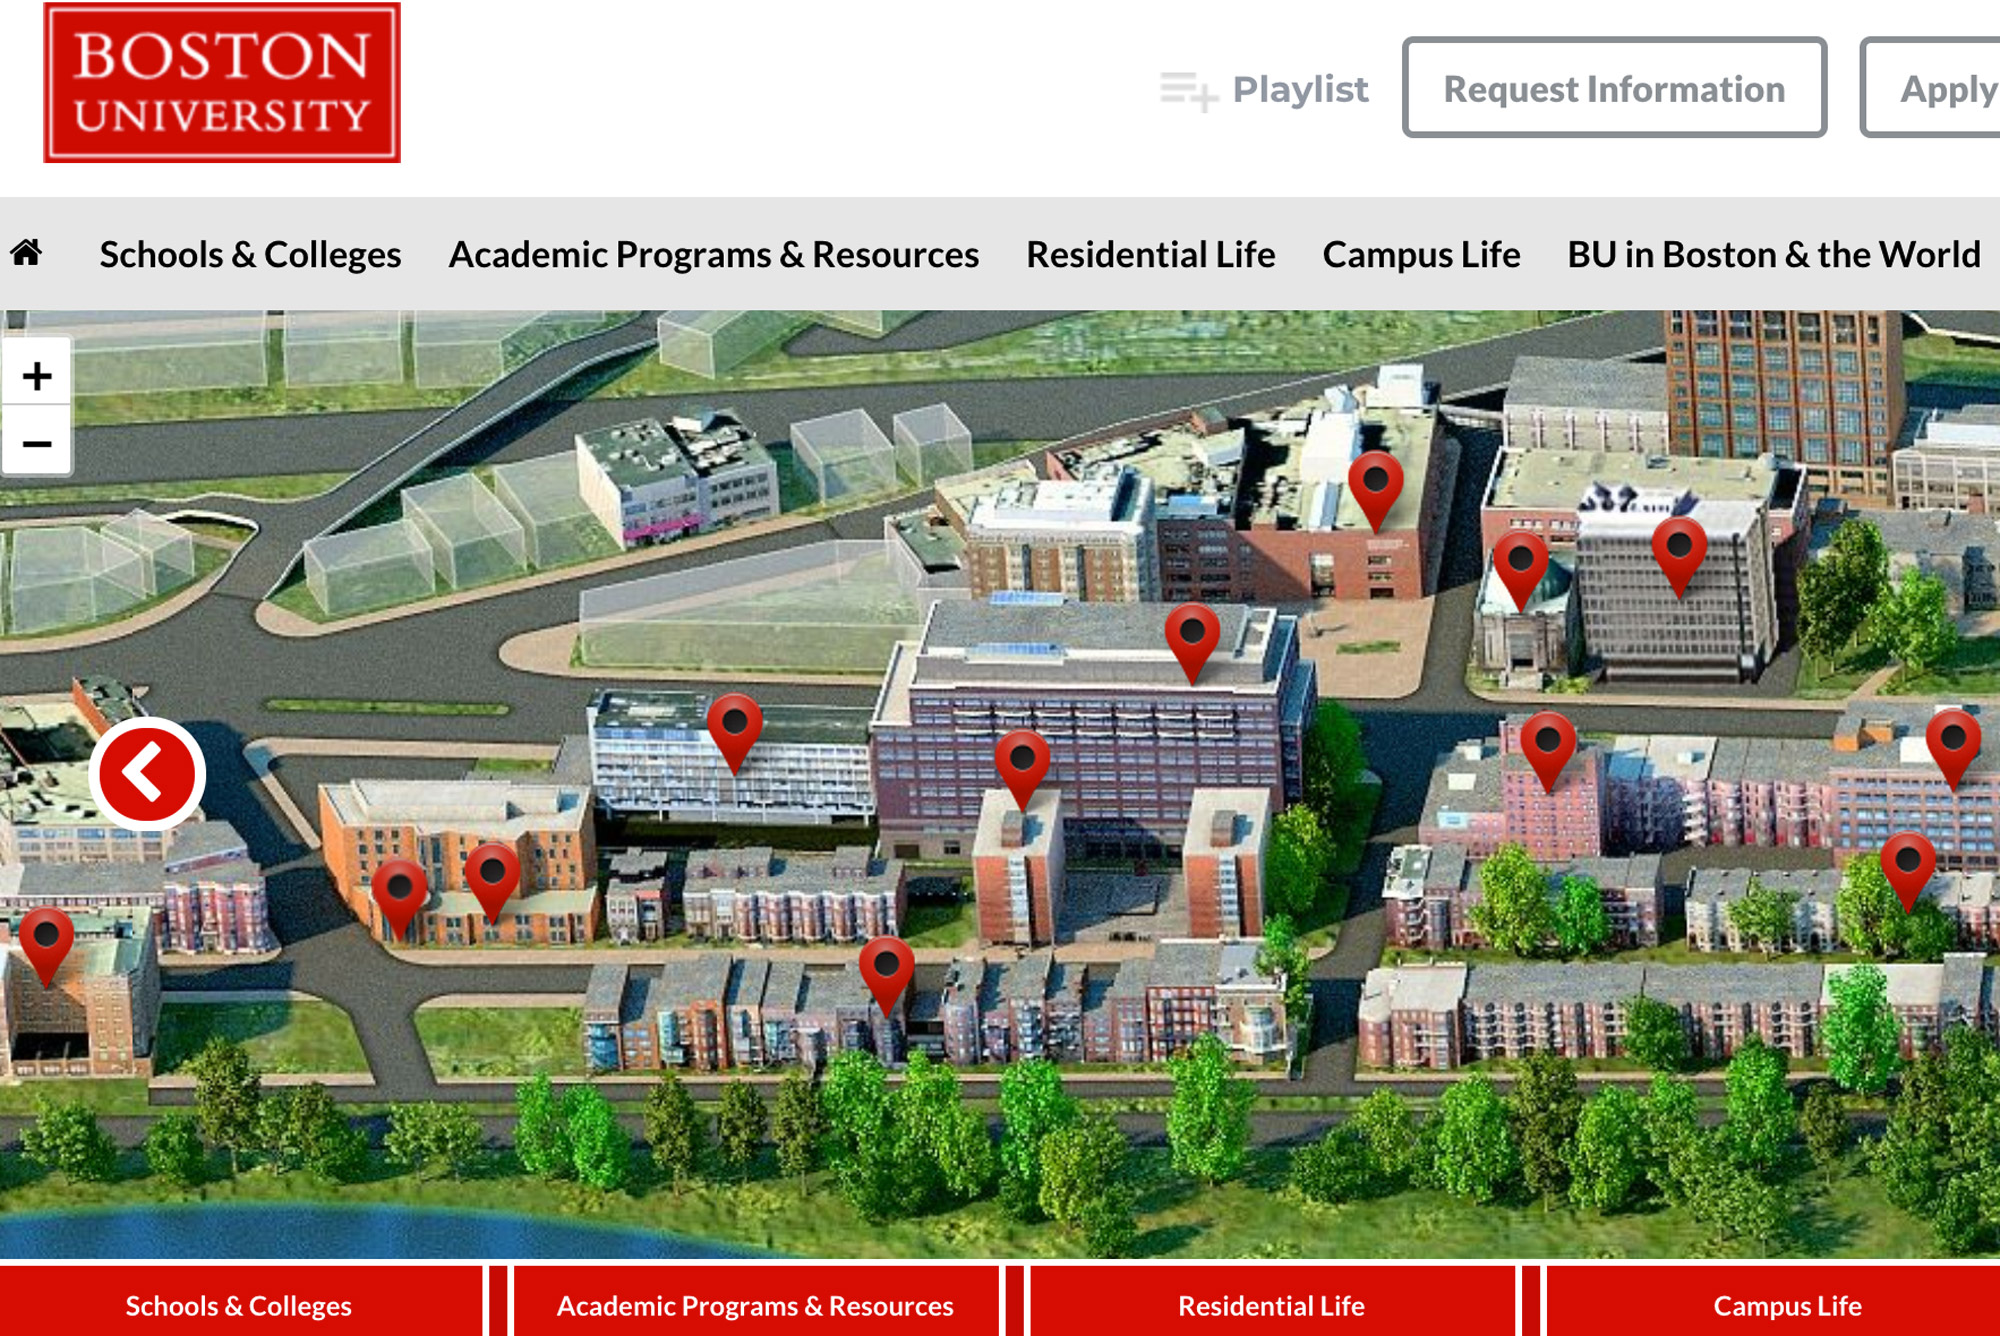 A screenshot of a virtual tour of the BU campus